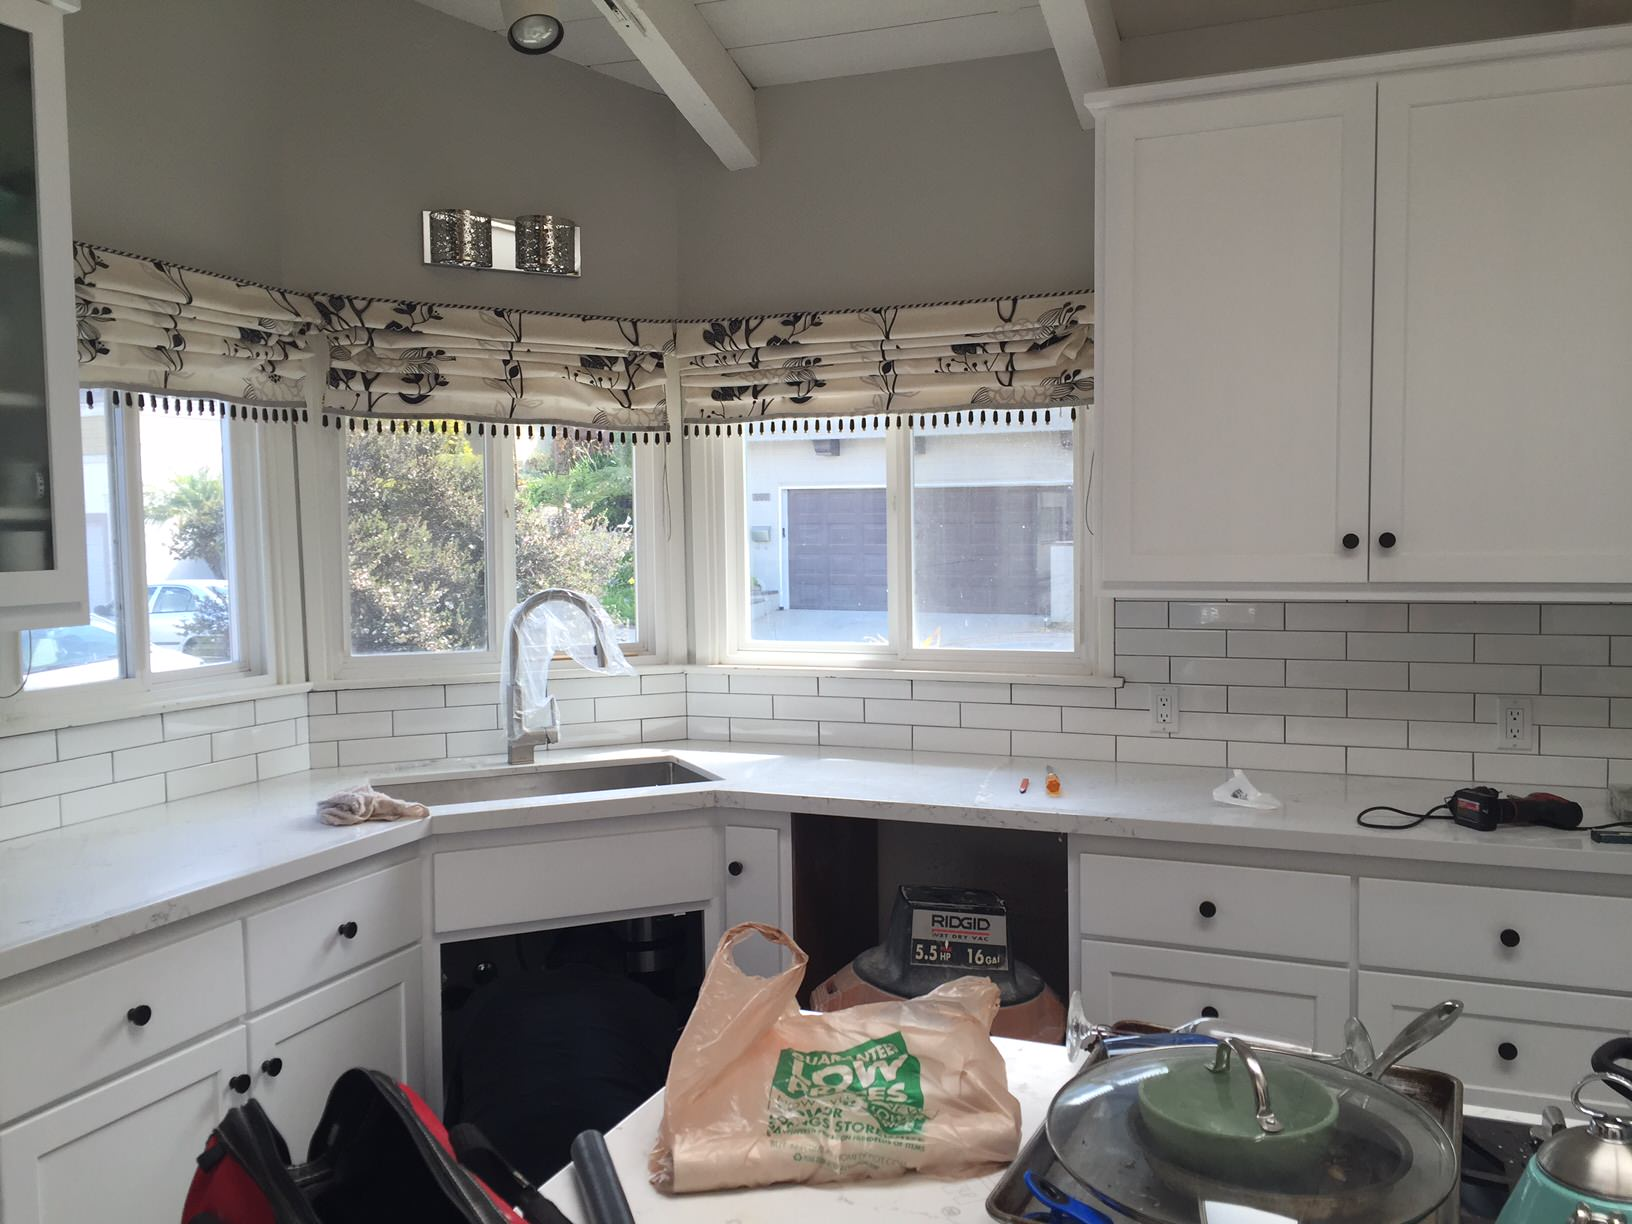 Adamski Kitchen in the middle or renovation